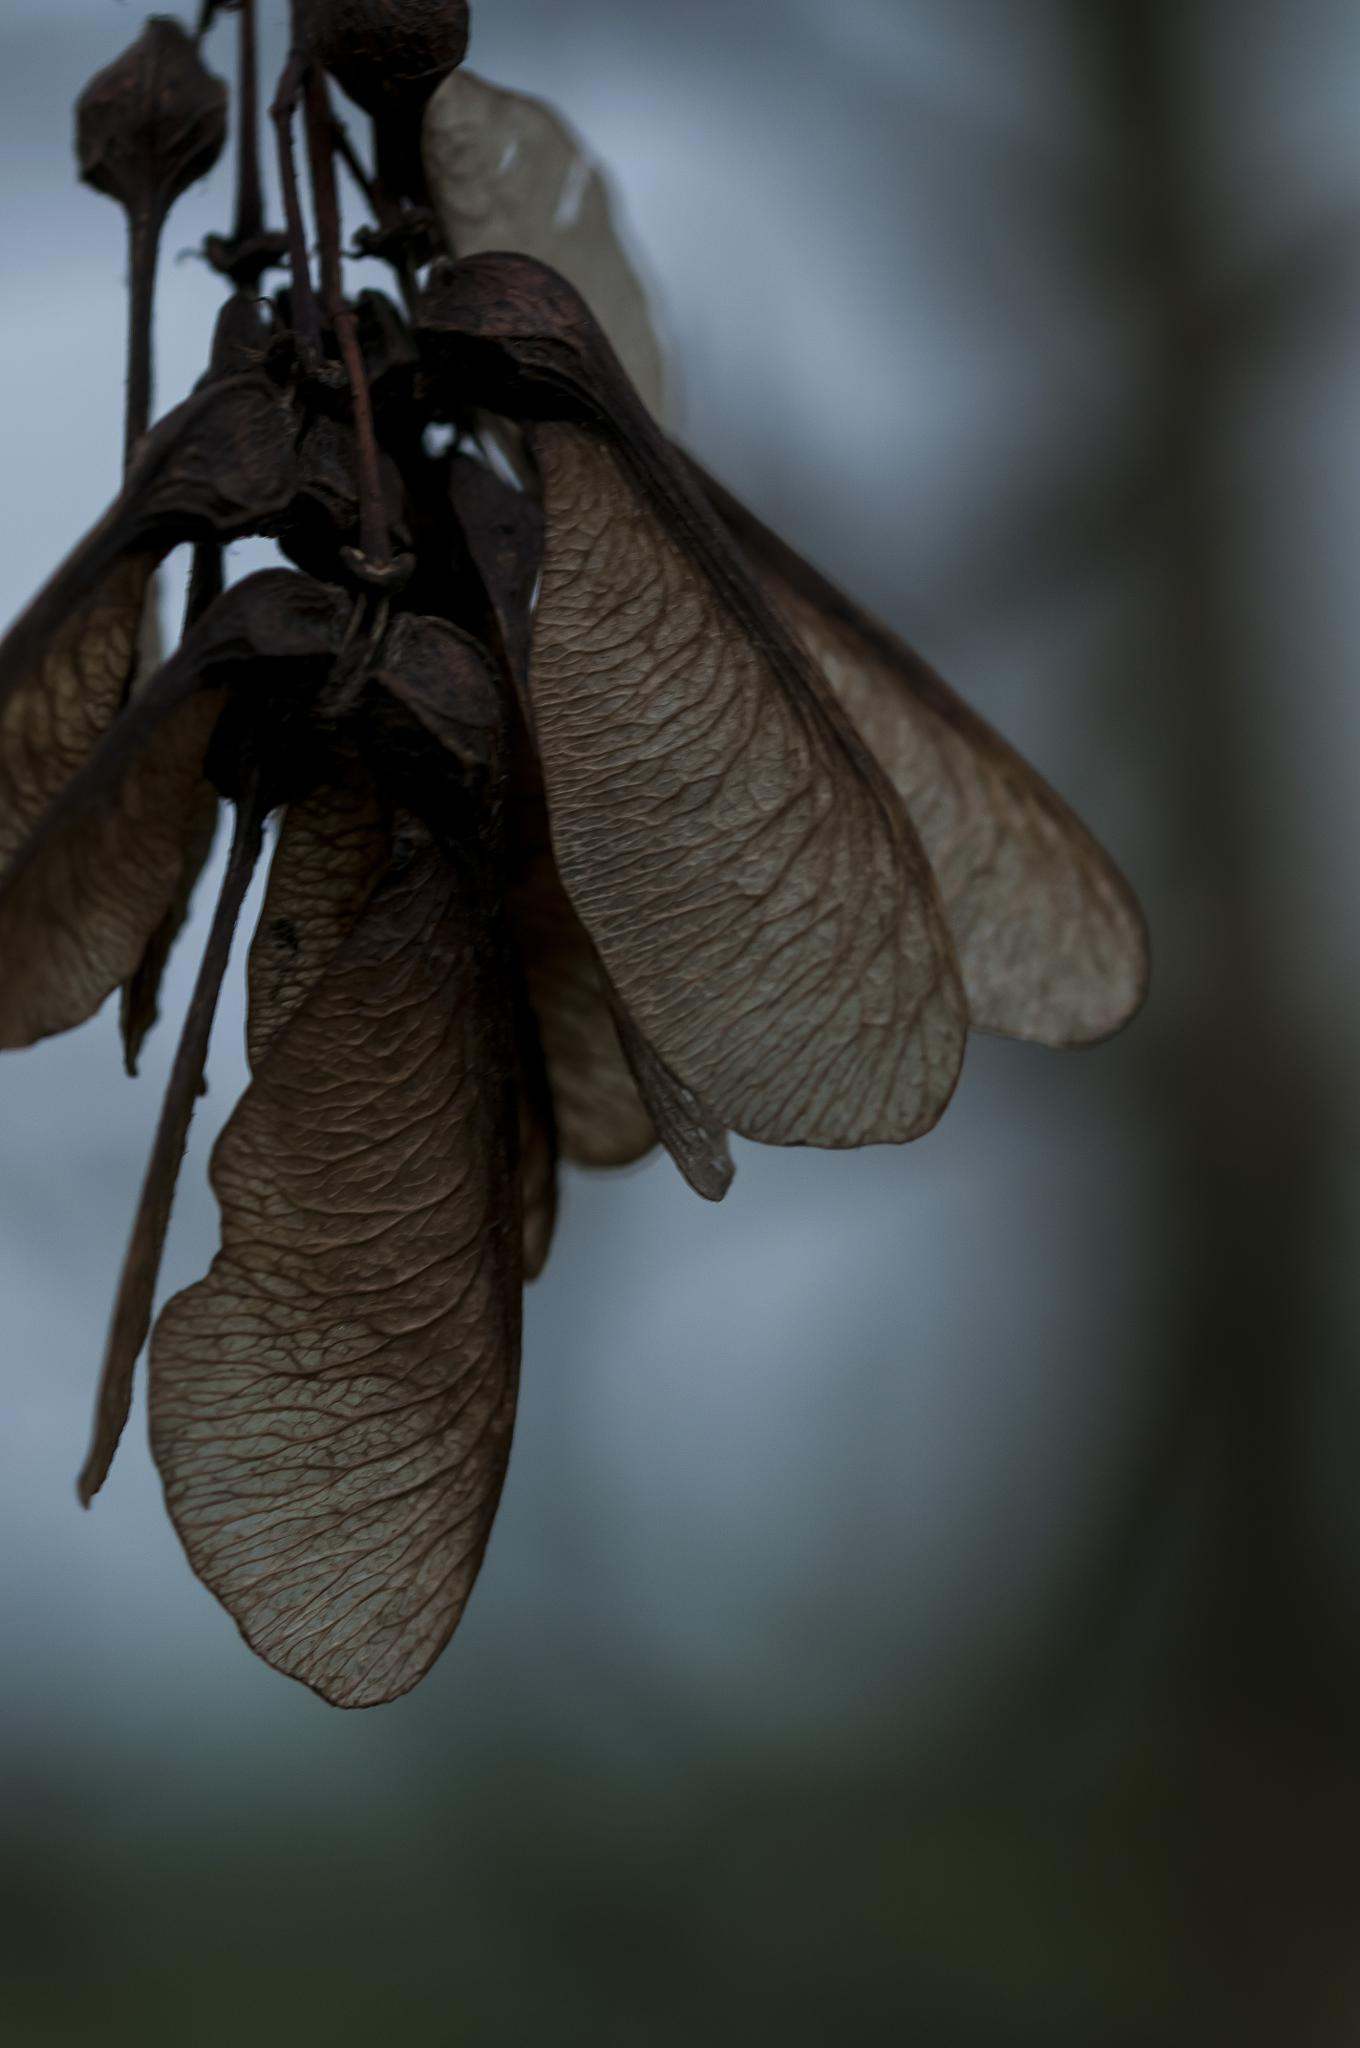 Sycamore Seed by Pete Feeny